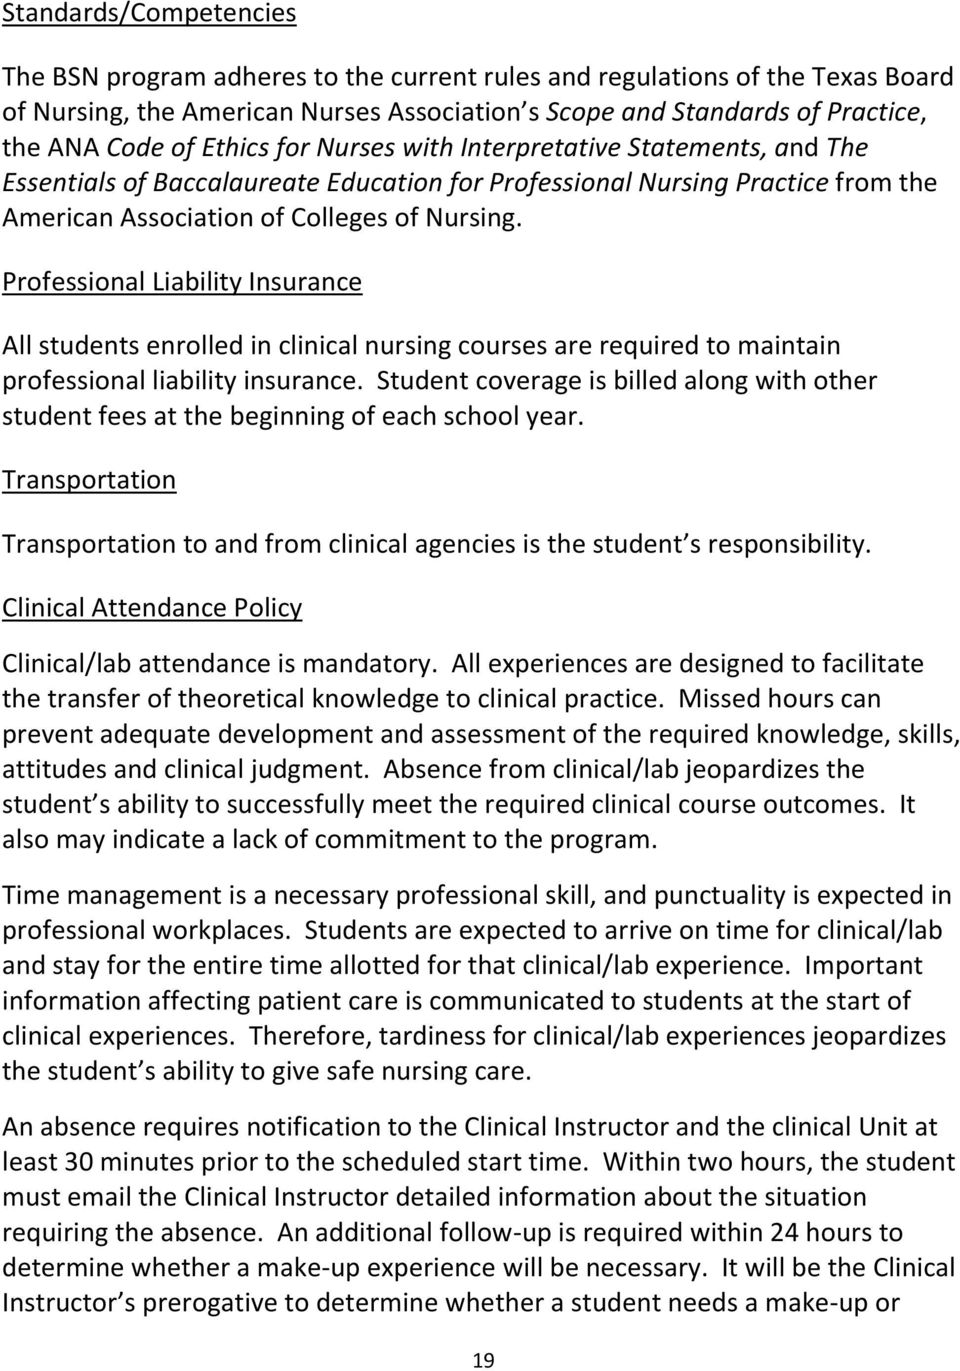 Professional Liability Insurance All students enrolled in clinical nursing courses are required to maintain professional liability insurance.